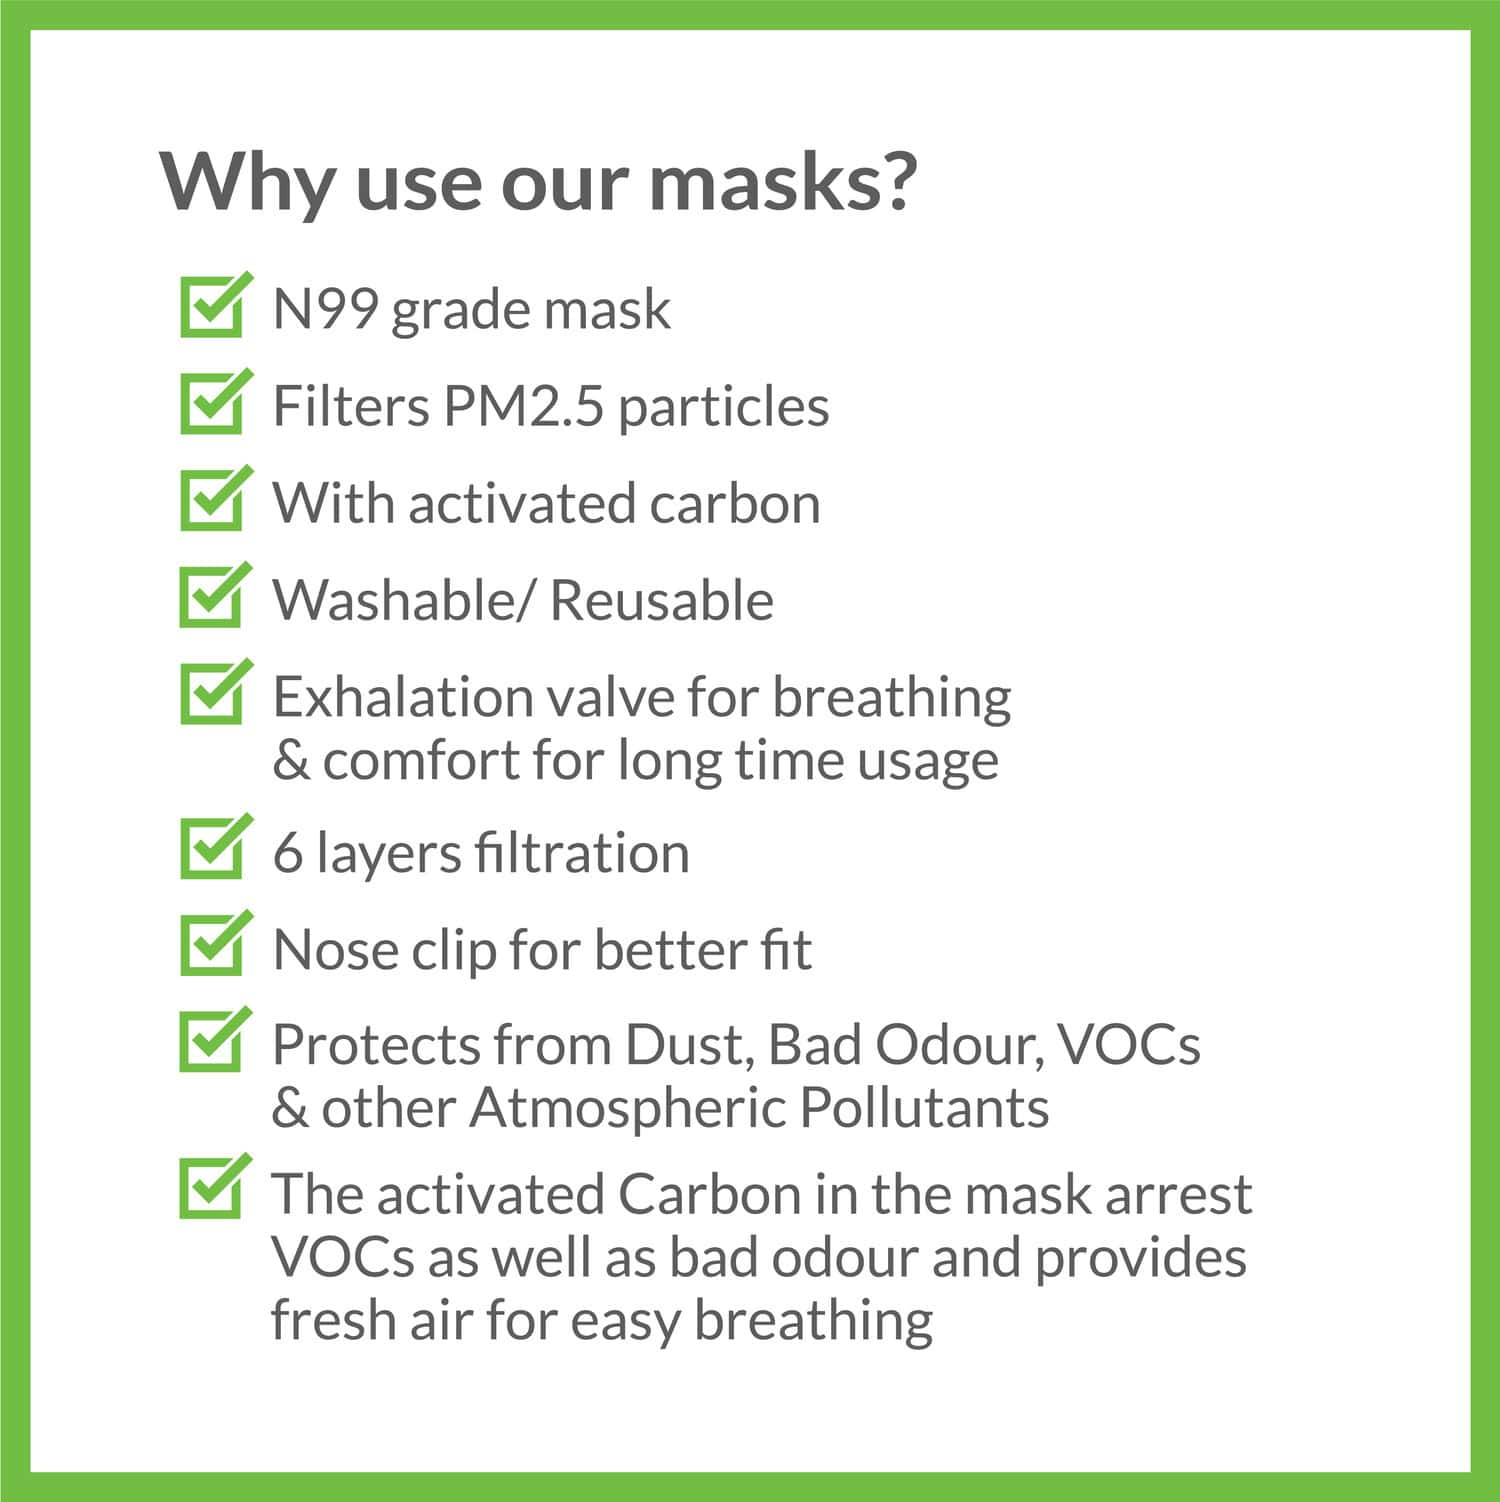 Bodyguard - Reusable Anti Pollution Face Mask With Activated Carbon, N99 + Pm2.5 For Kids